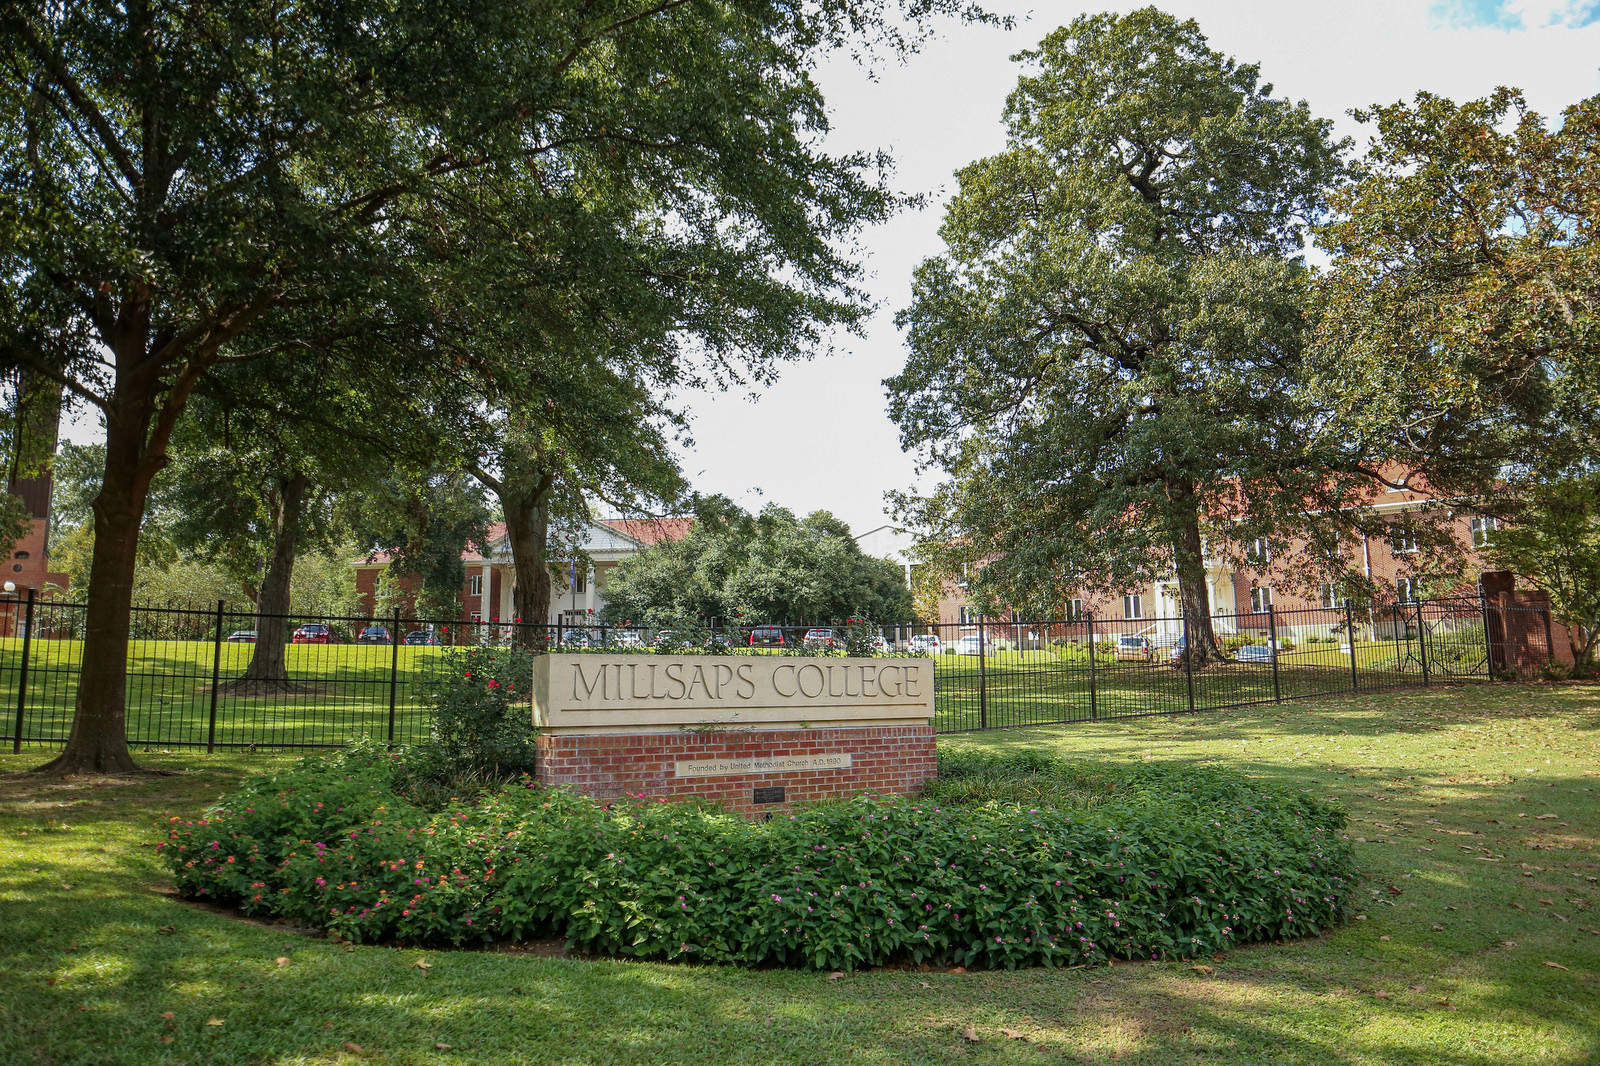 Millsaps College in Jackson, Miss., is among 78 organizations to receive $70 million in grants from the Lilly Endowment. Photo courtesy of Millsaps College.